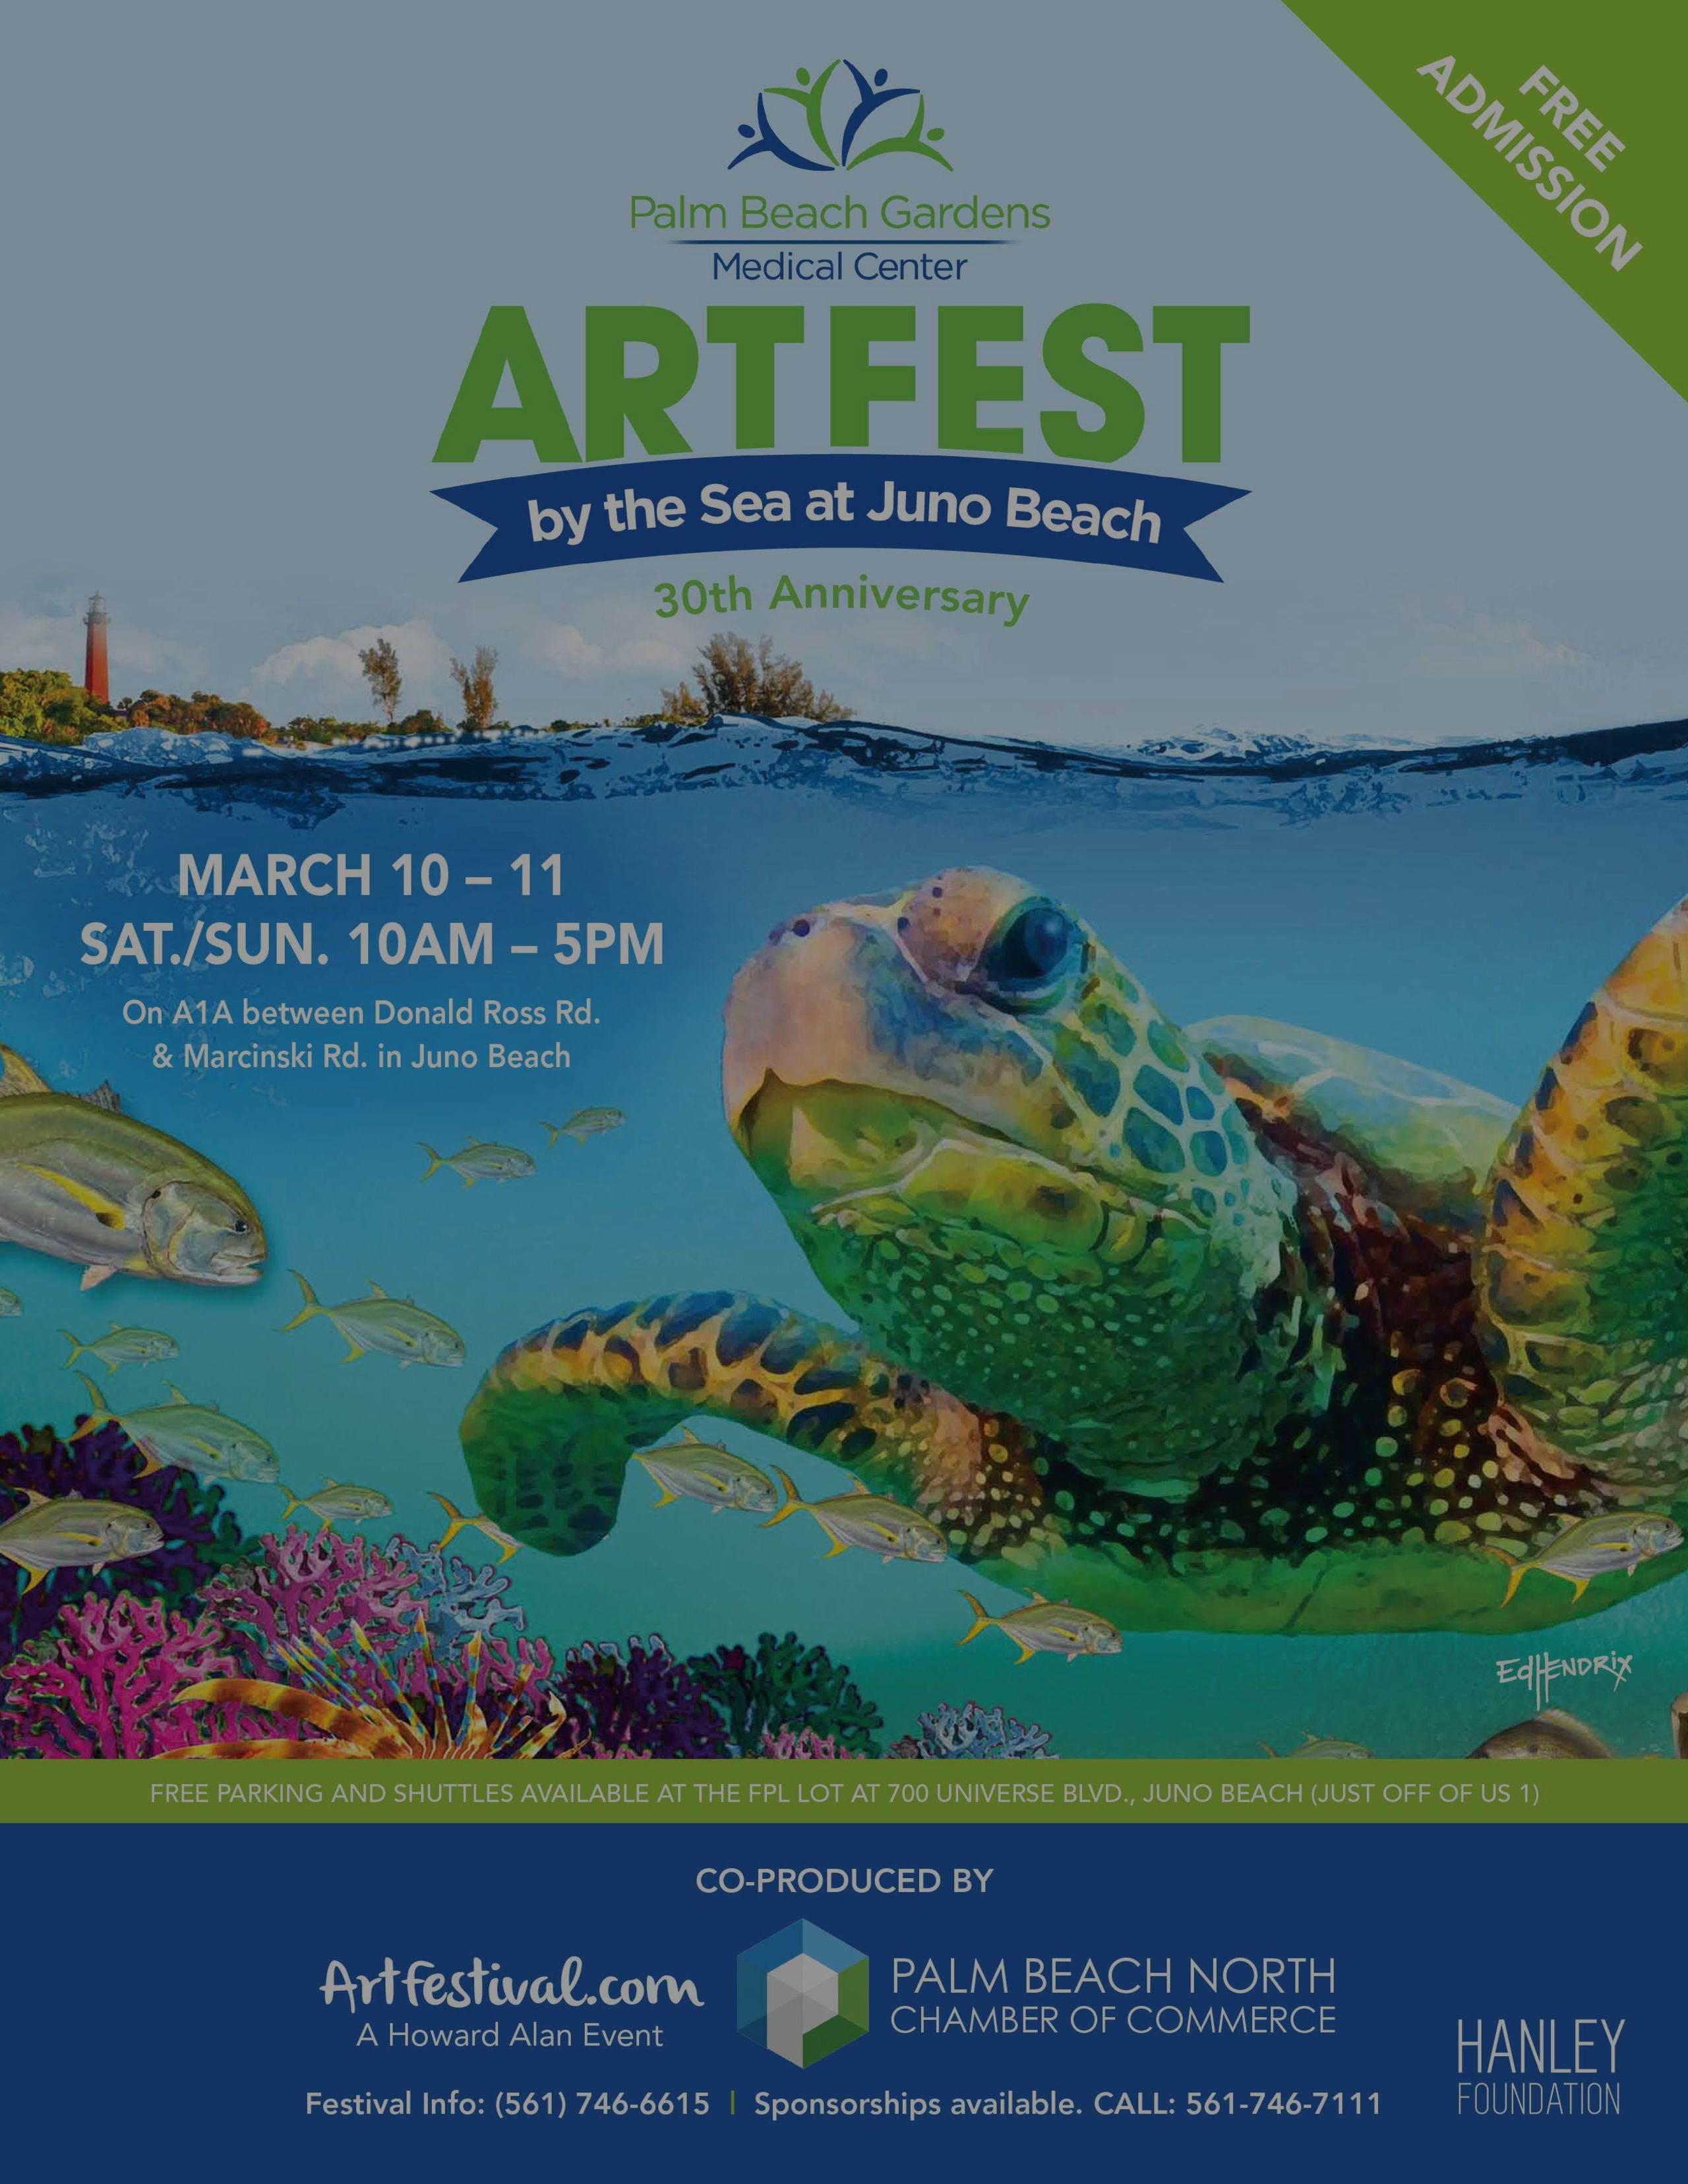 ArtFest by the Sea at Juno Beach